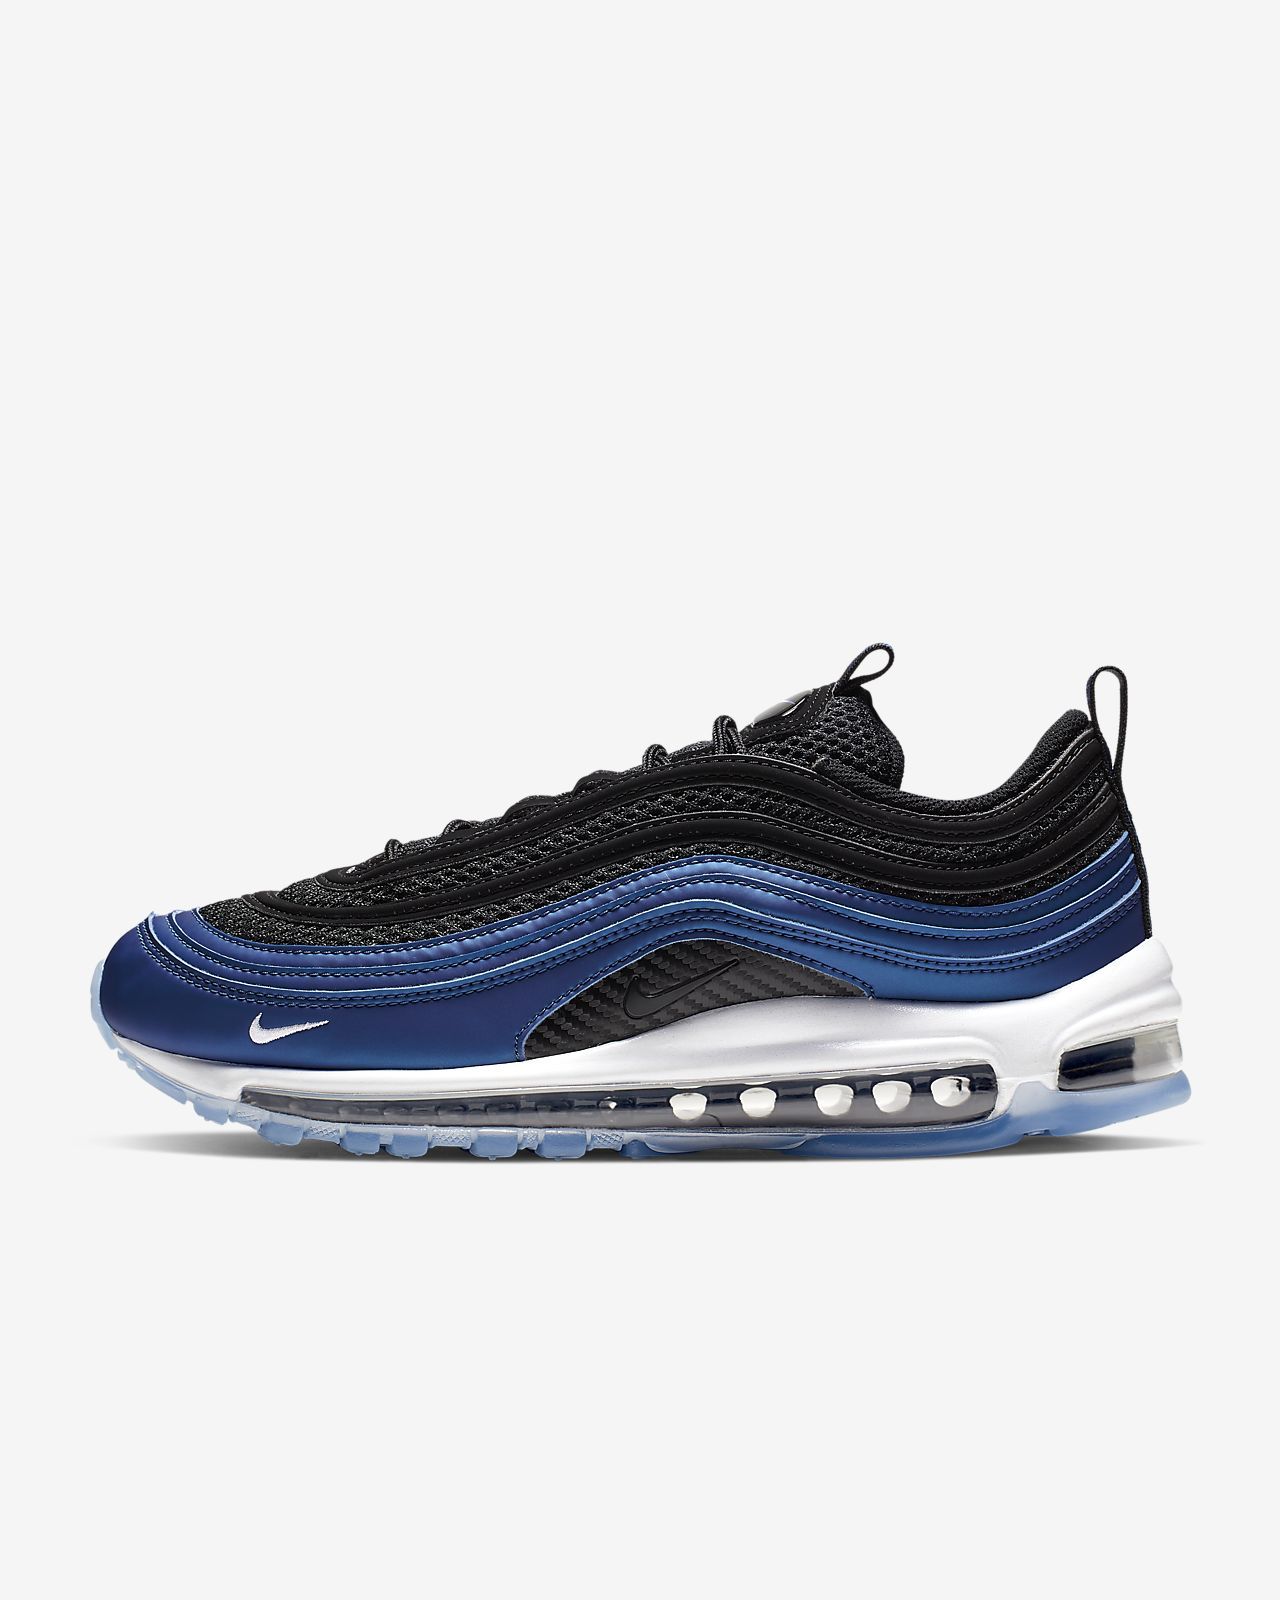 Nike Air Max 97 QS Men's Shoe